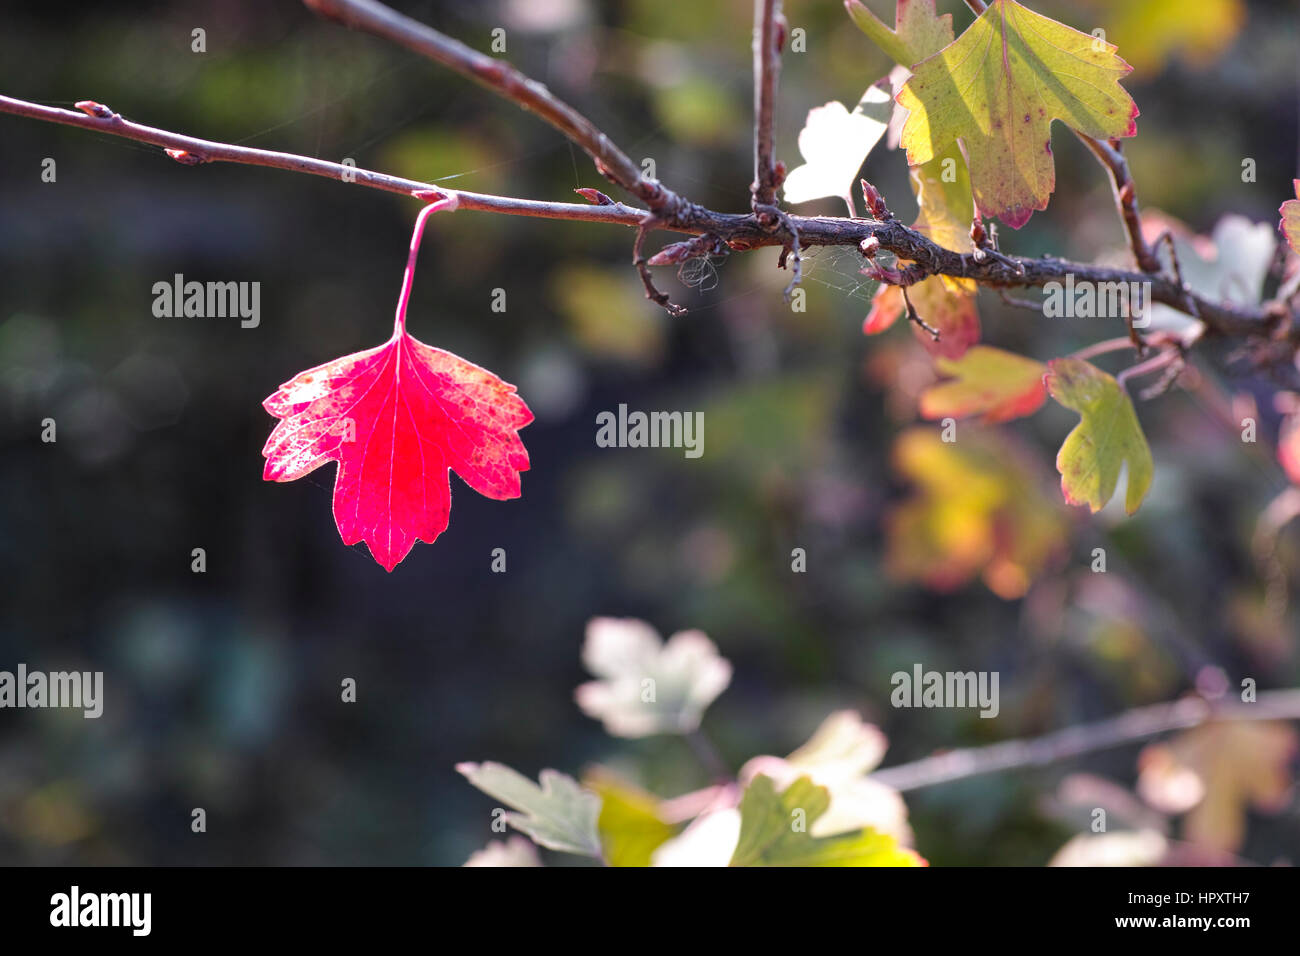 Lonely red leaf on the twig. - Stock Image